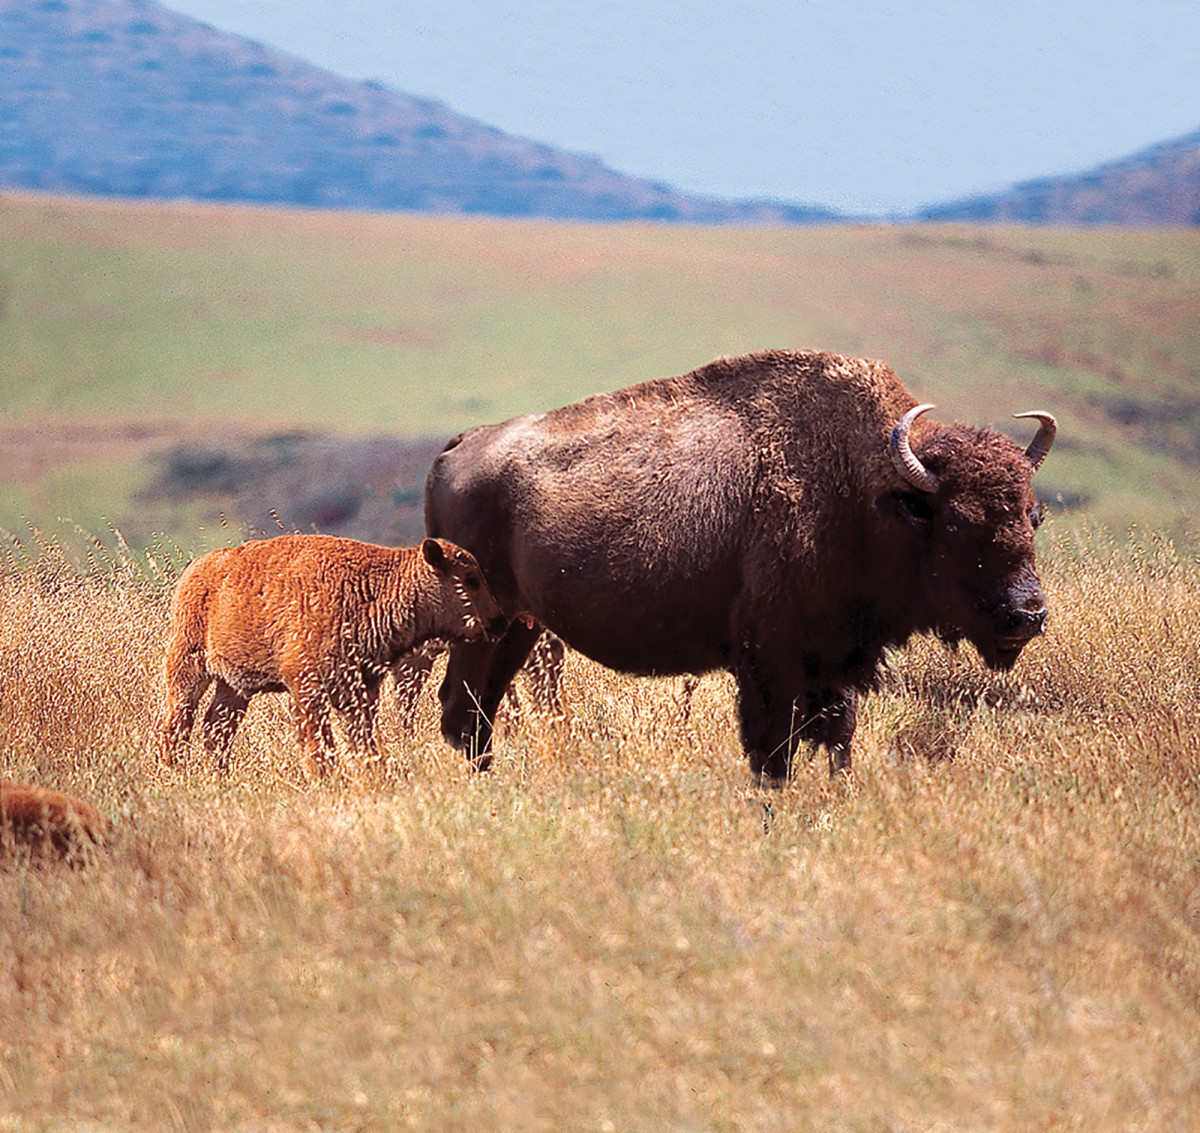 There are buffalo in yonder hills.